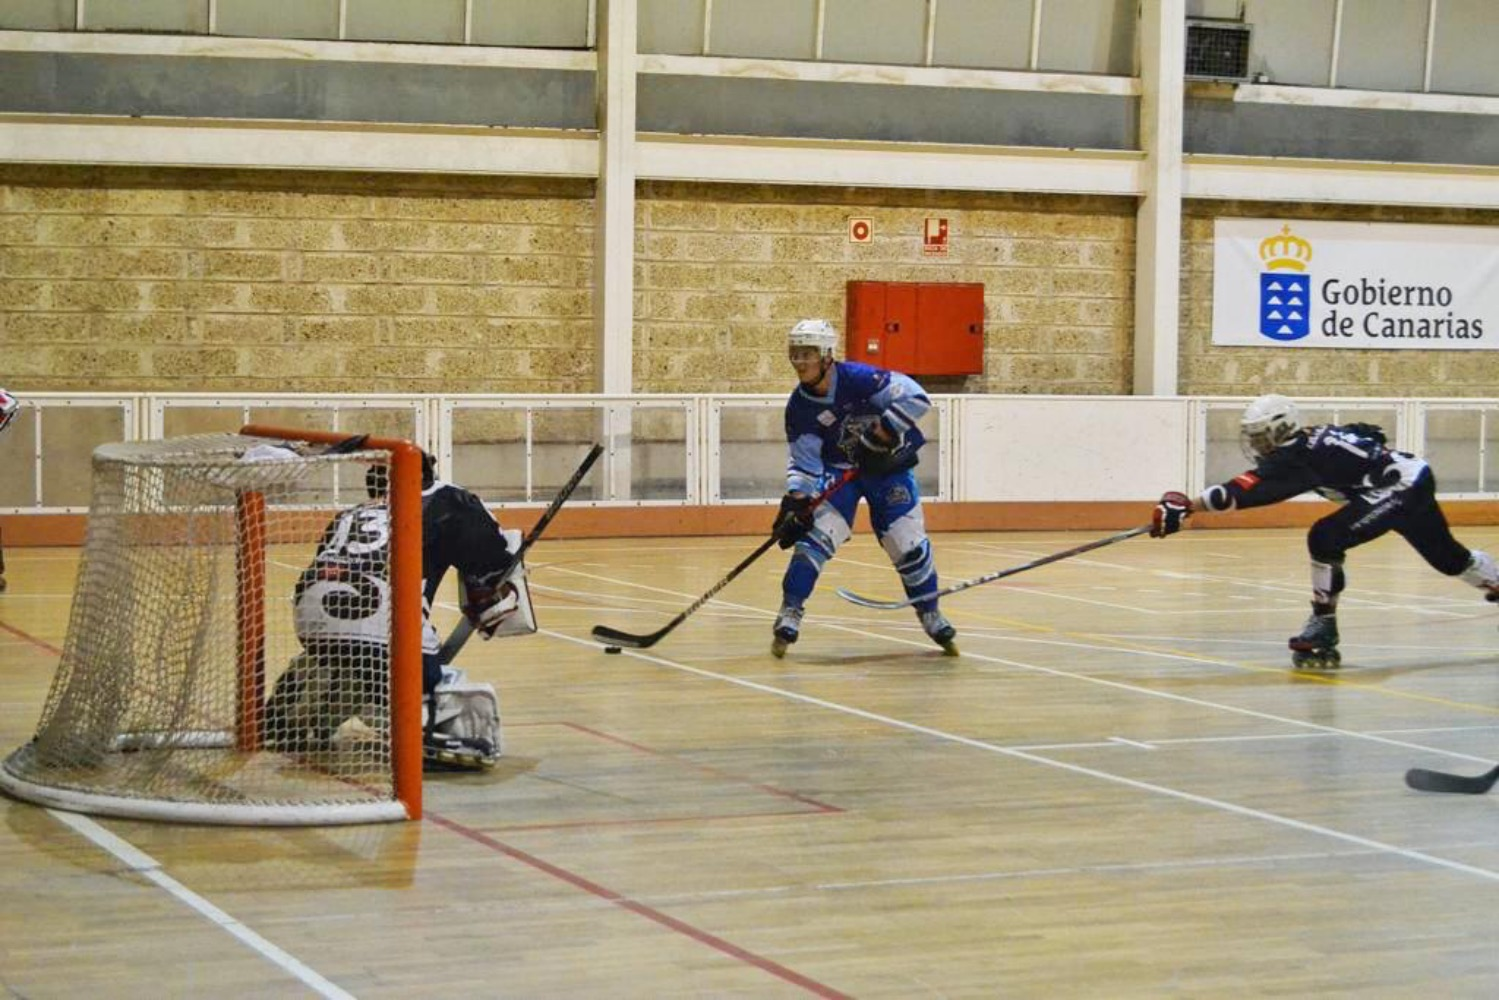 Hockey Tenerife Guanches d64_Fotor